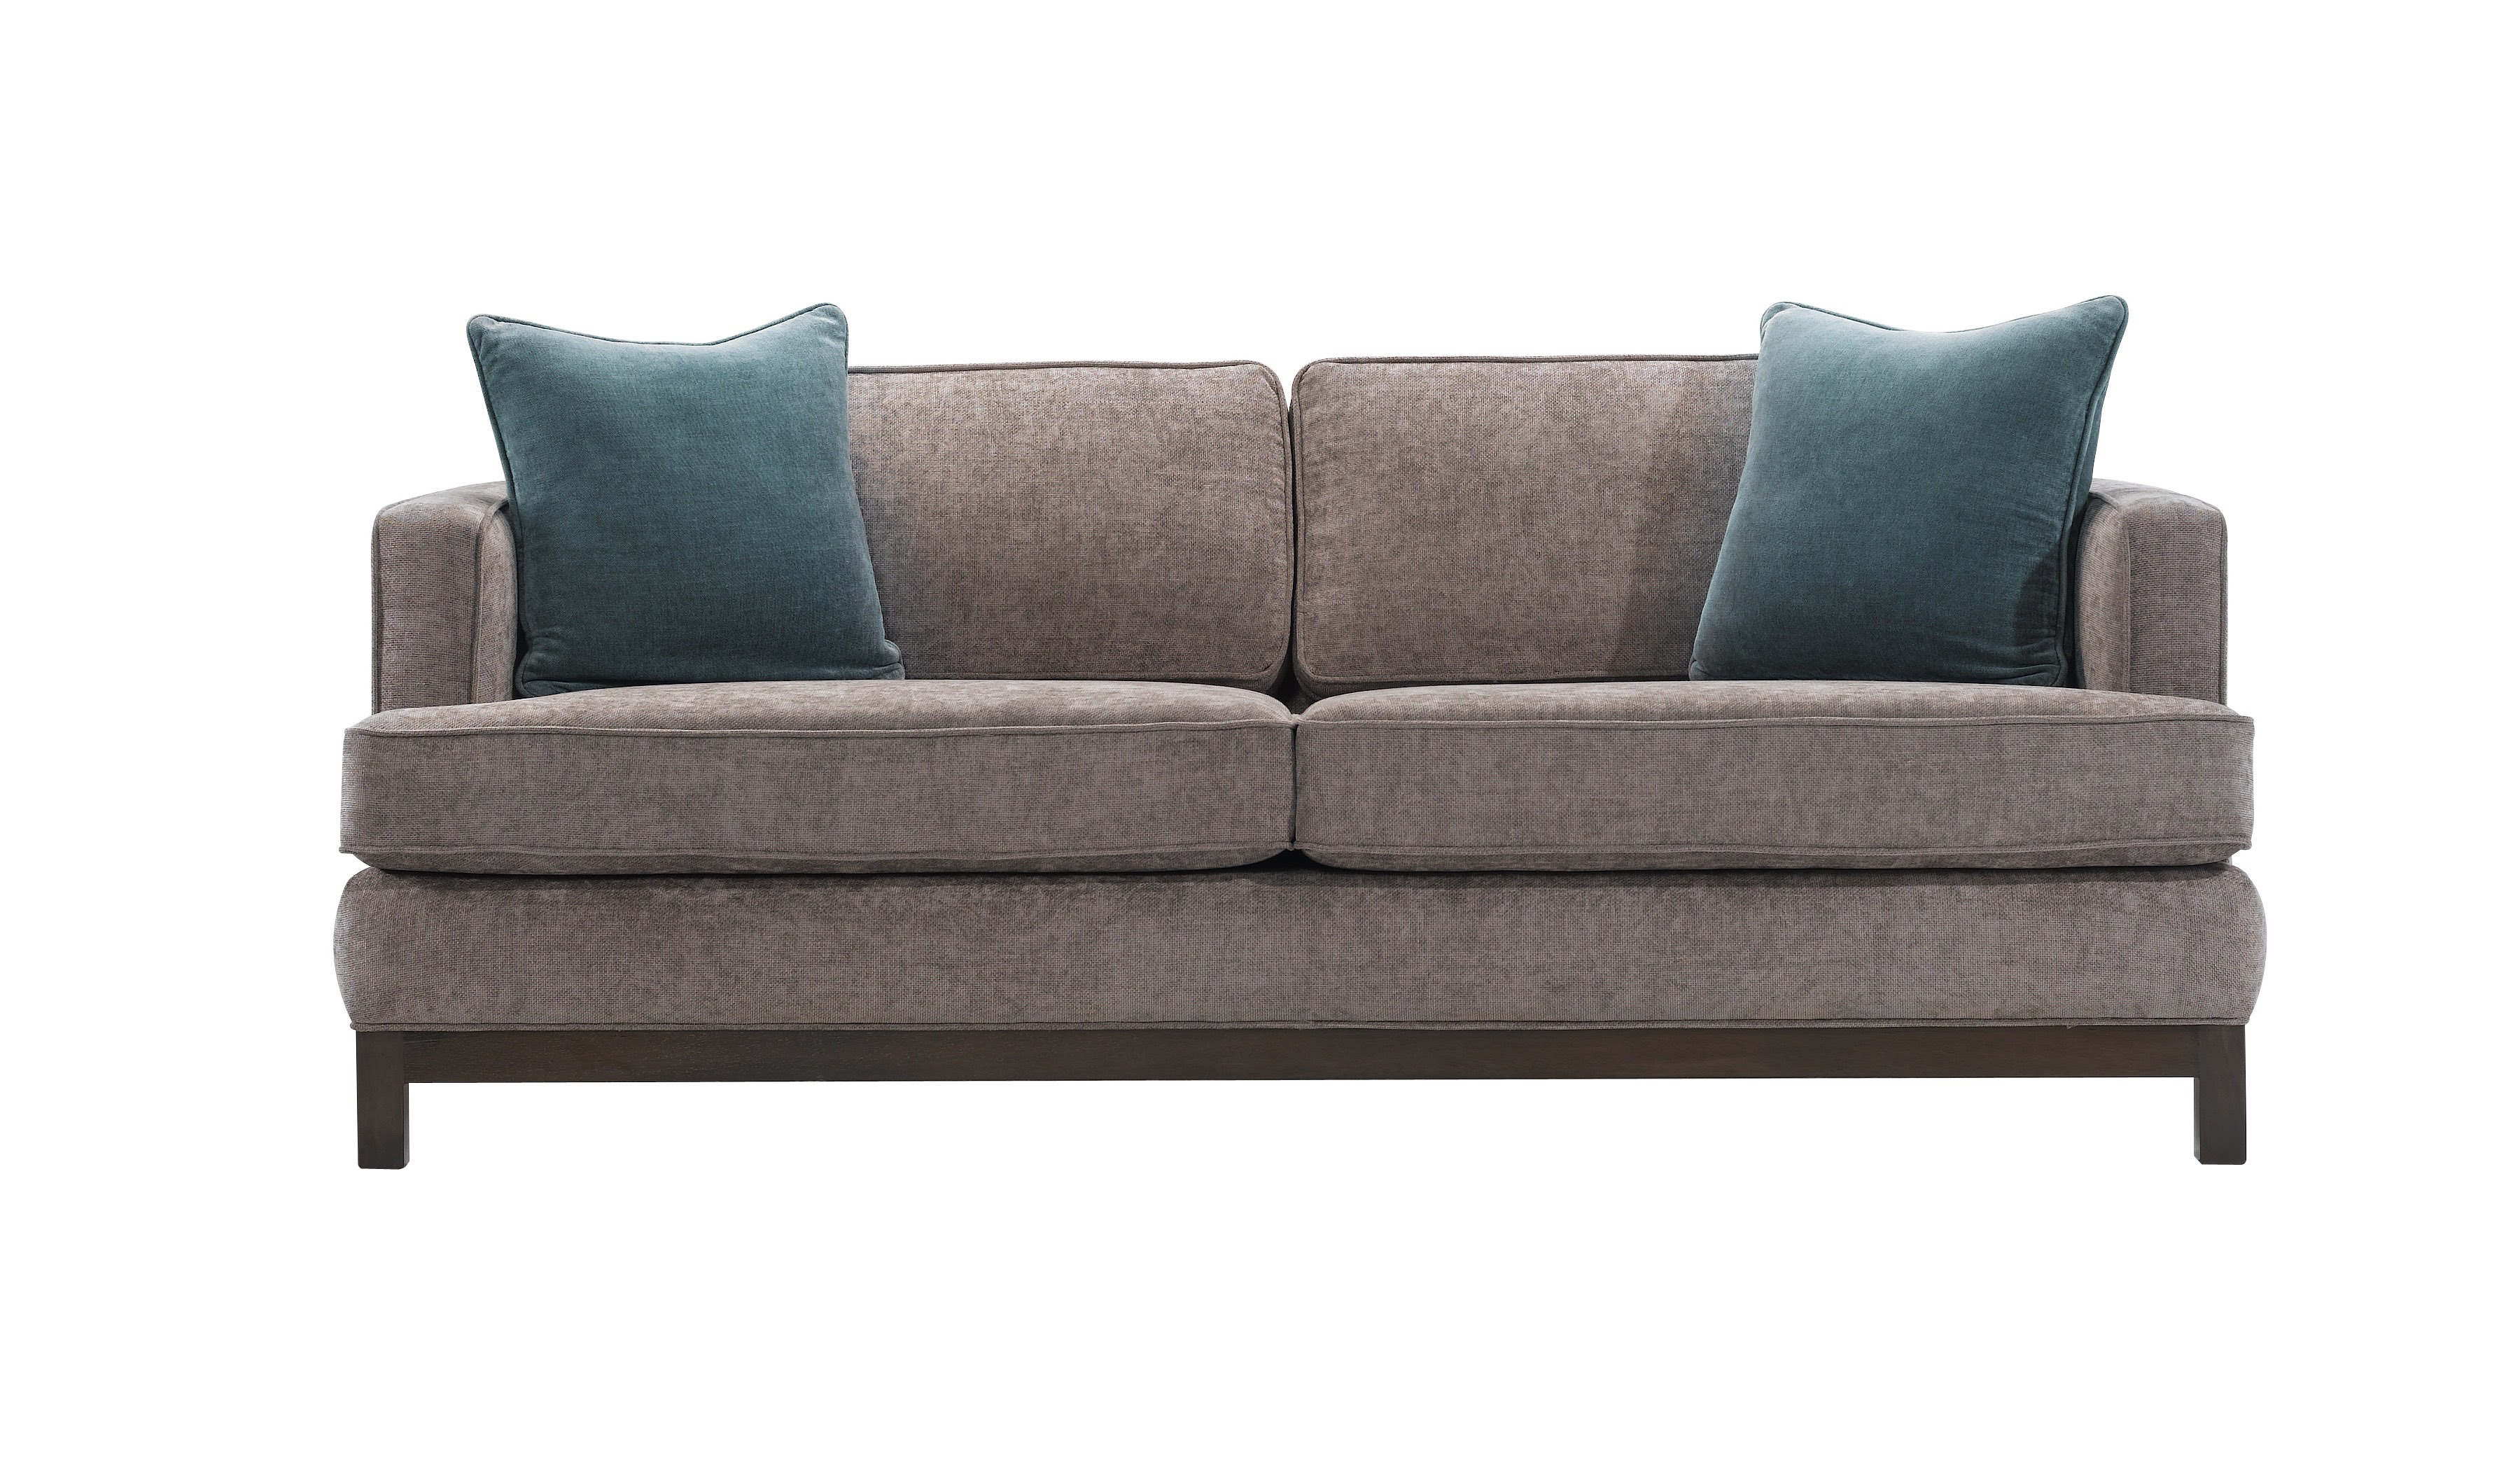 Why choose foam for your sofa cushion refilling?